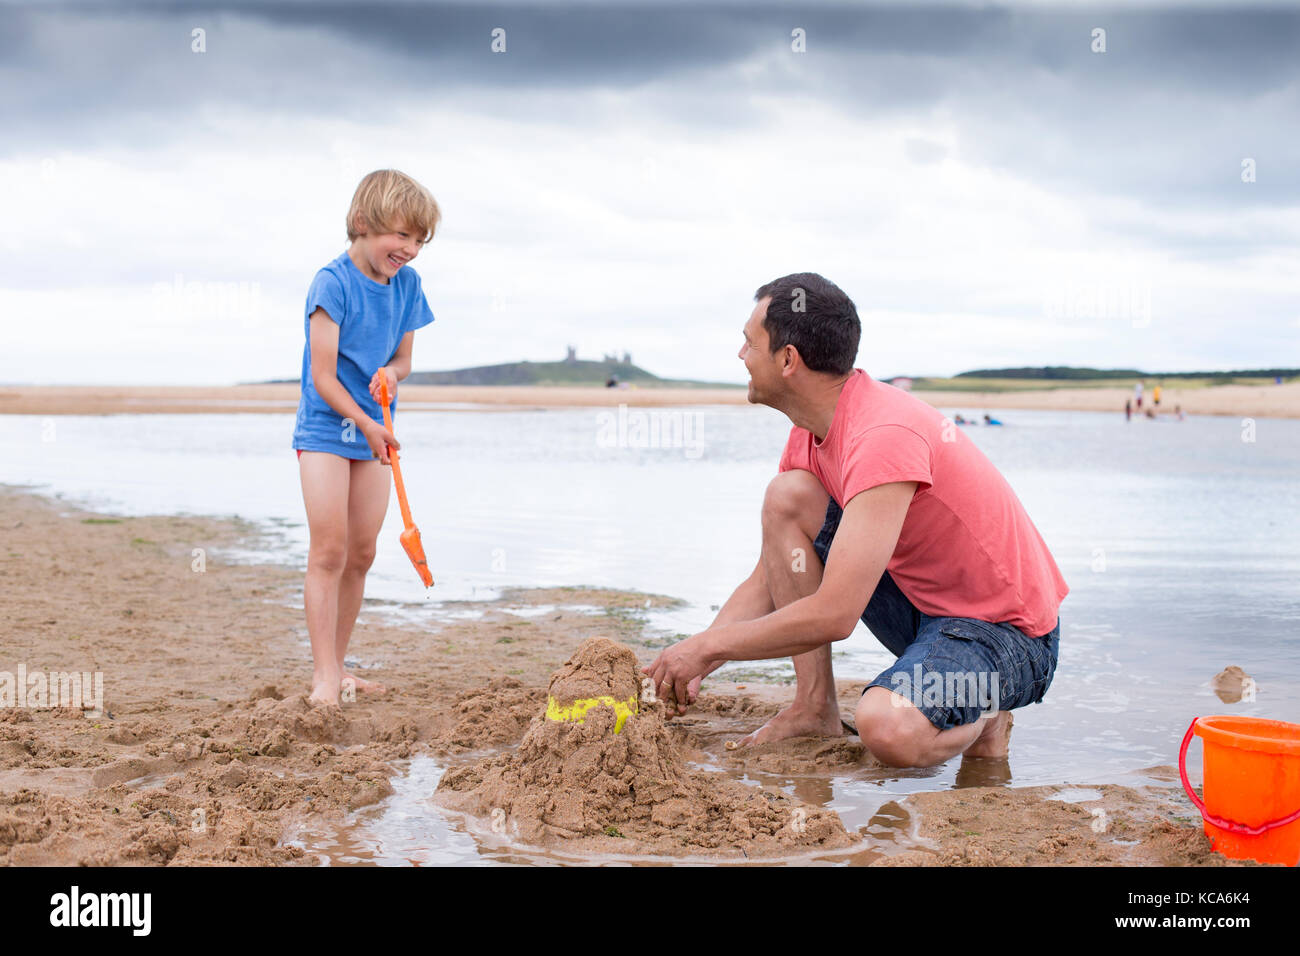 A father and son are building sand castles on the beach - Stock Image